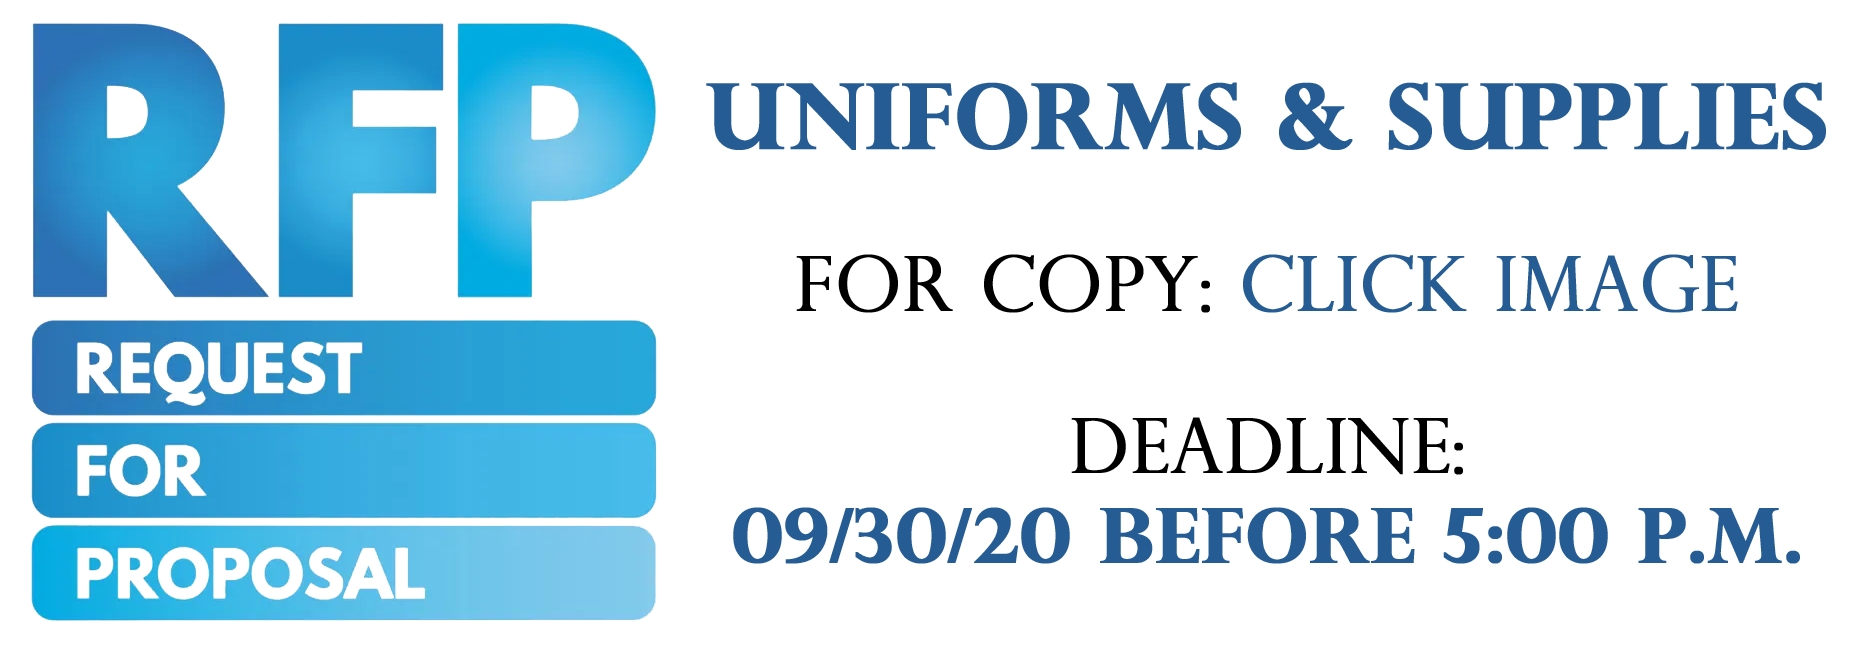 RFP image for uniforms and supplies